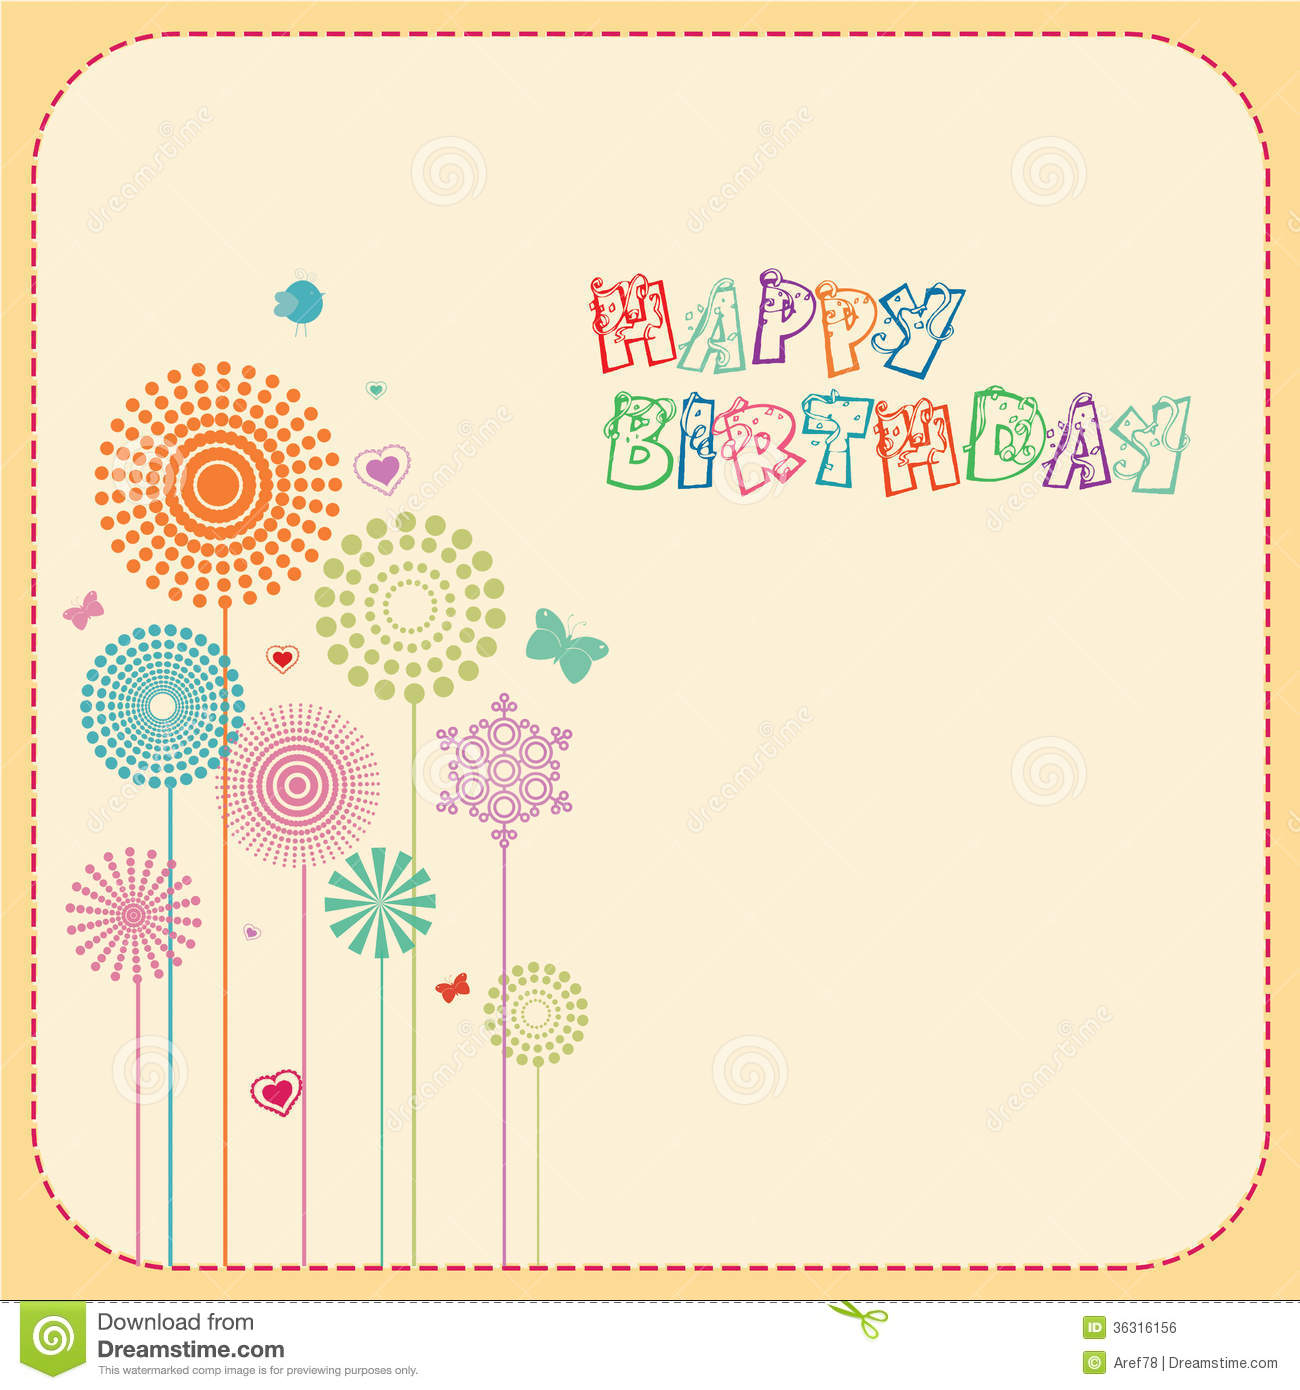 background images for birthday greetings ; happy-birthday-card-background-flowers-36316156